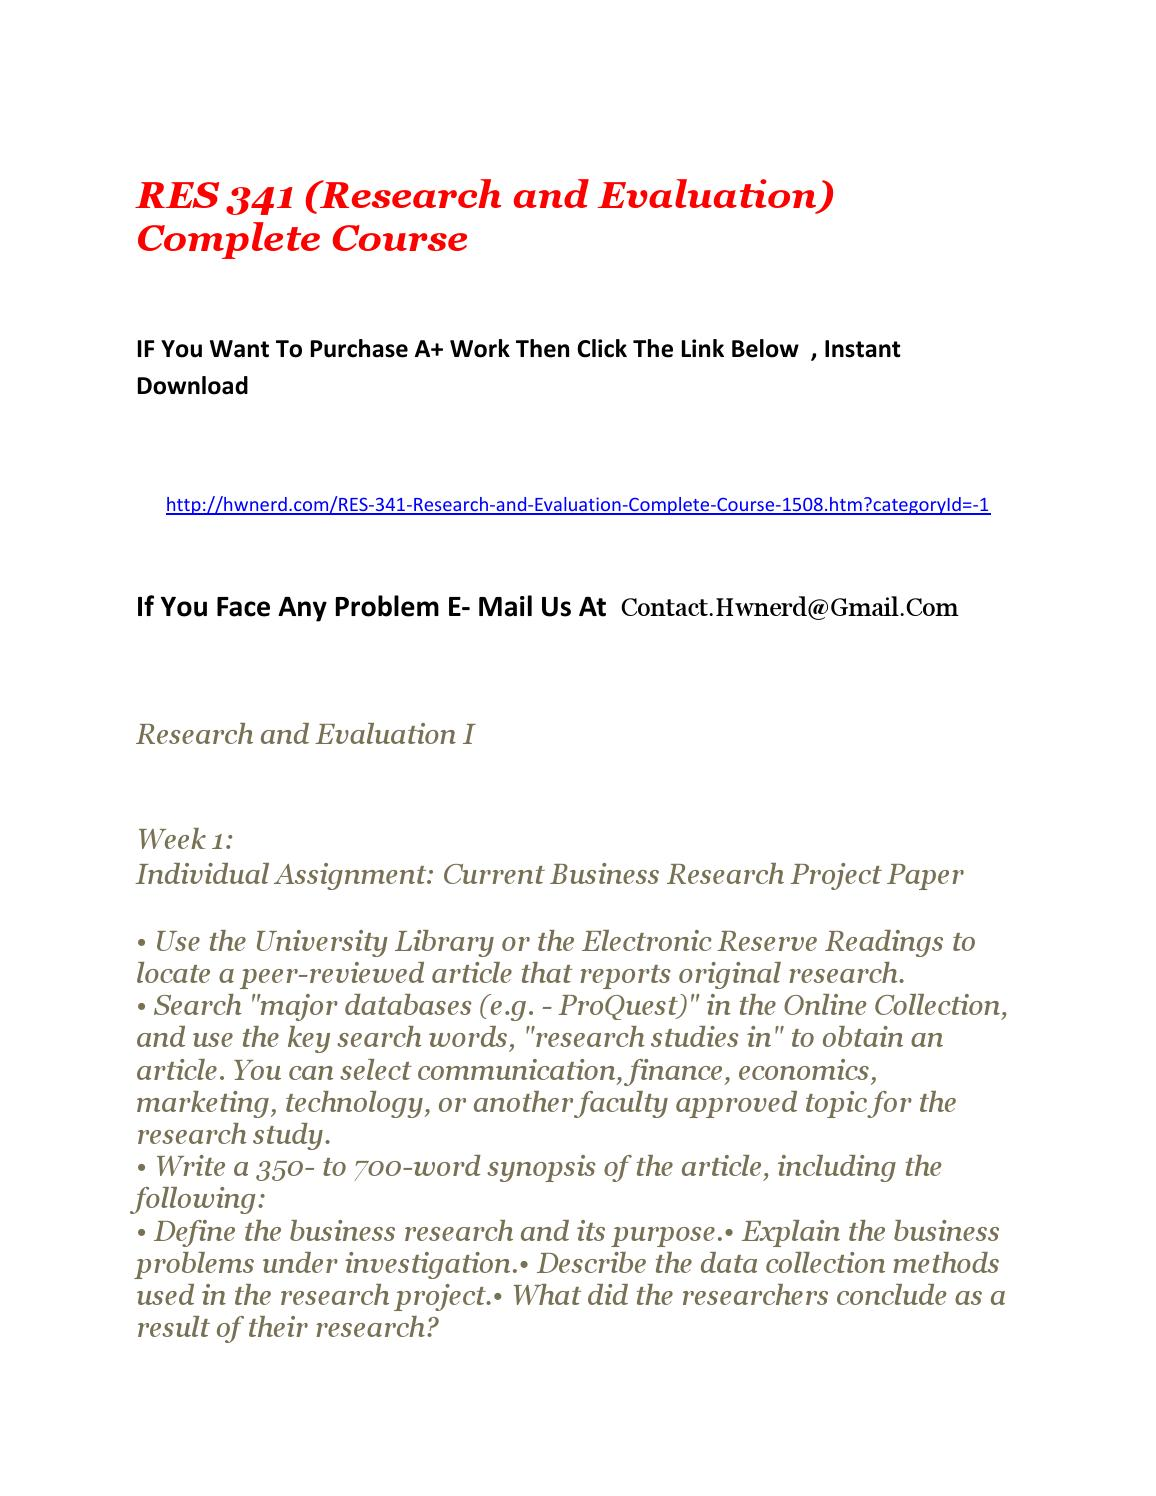 res341 current business research project paper